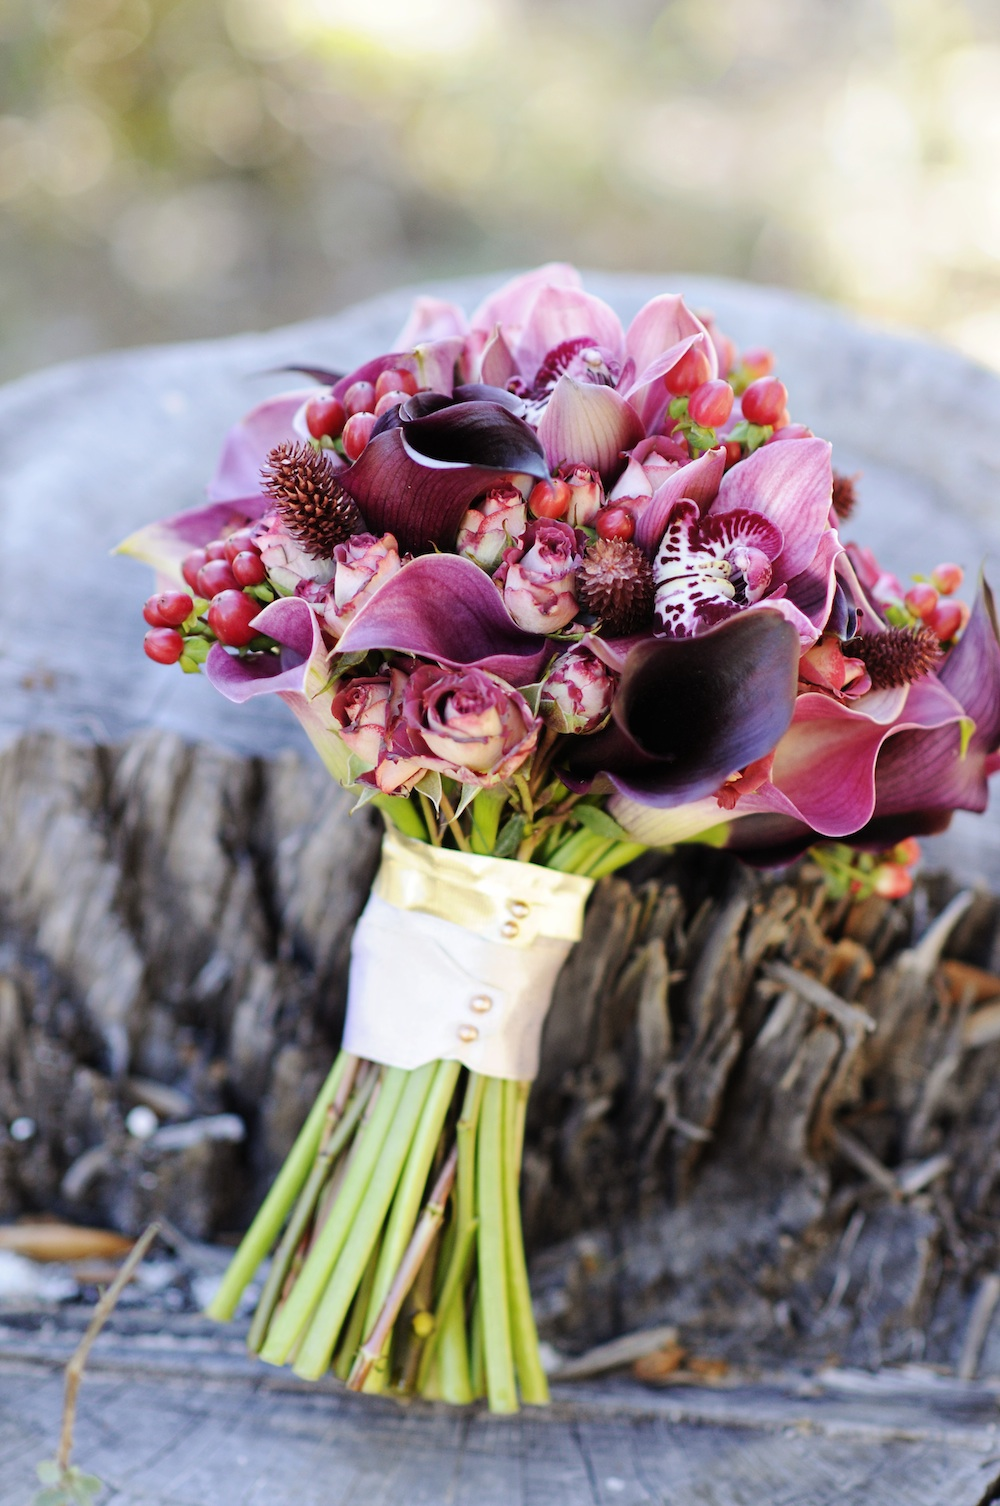 Stunning Red and Plum Wedding Bouquet / from a Winter Wedding Inspired Photo Shoot / photo by Kismis Ink Photography / Bouquet by MMD Events / as seen on www.BrendasWeddingBlog.com